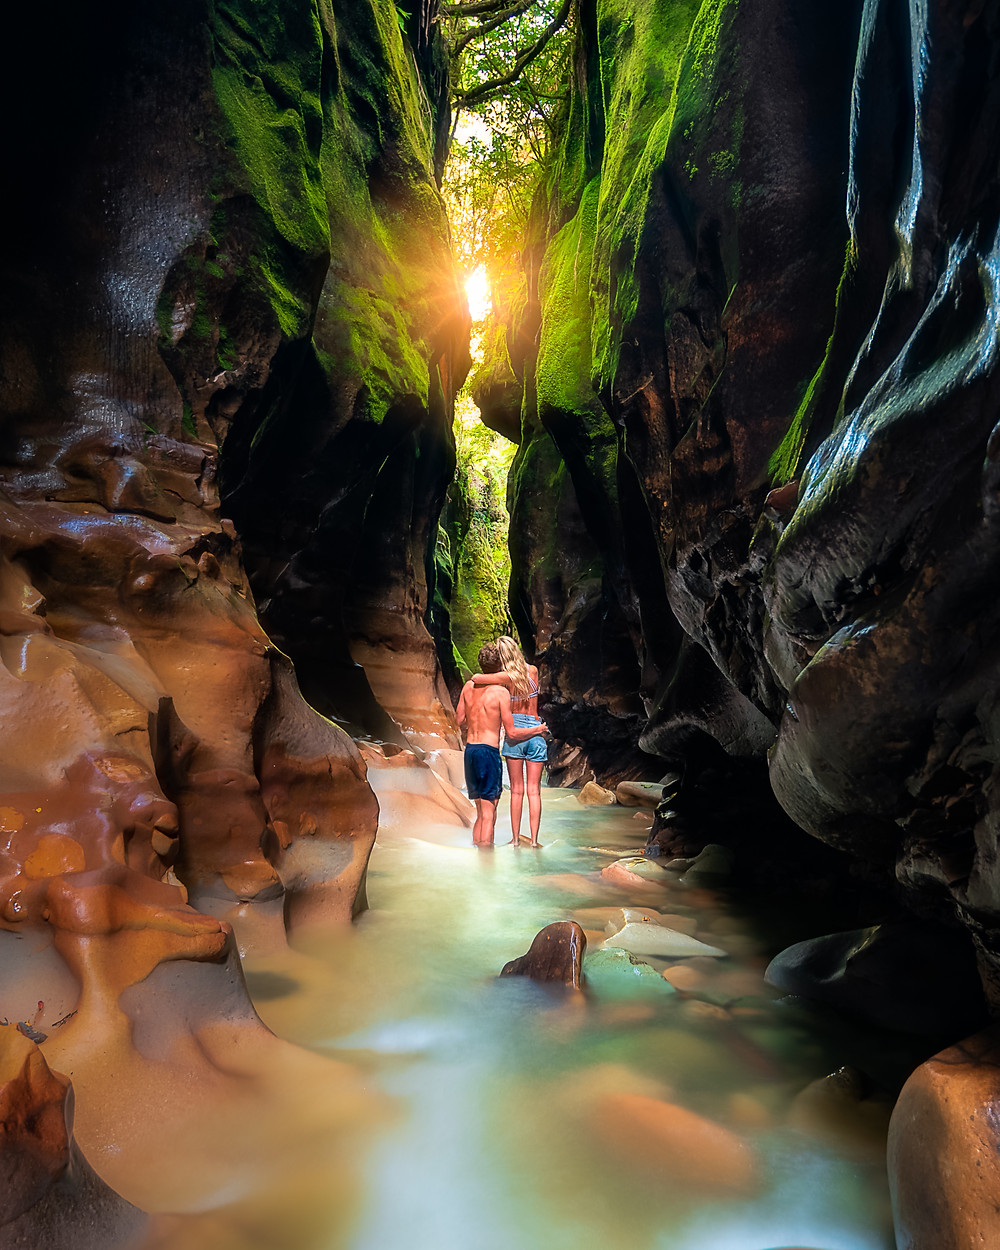 Ford Creek Chasm Blackball Travel Couple Photography Long Exposure Hidden Gem New Zealand Off the Beaten Path